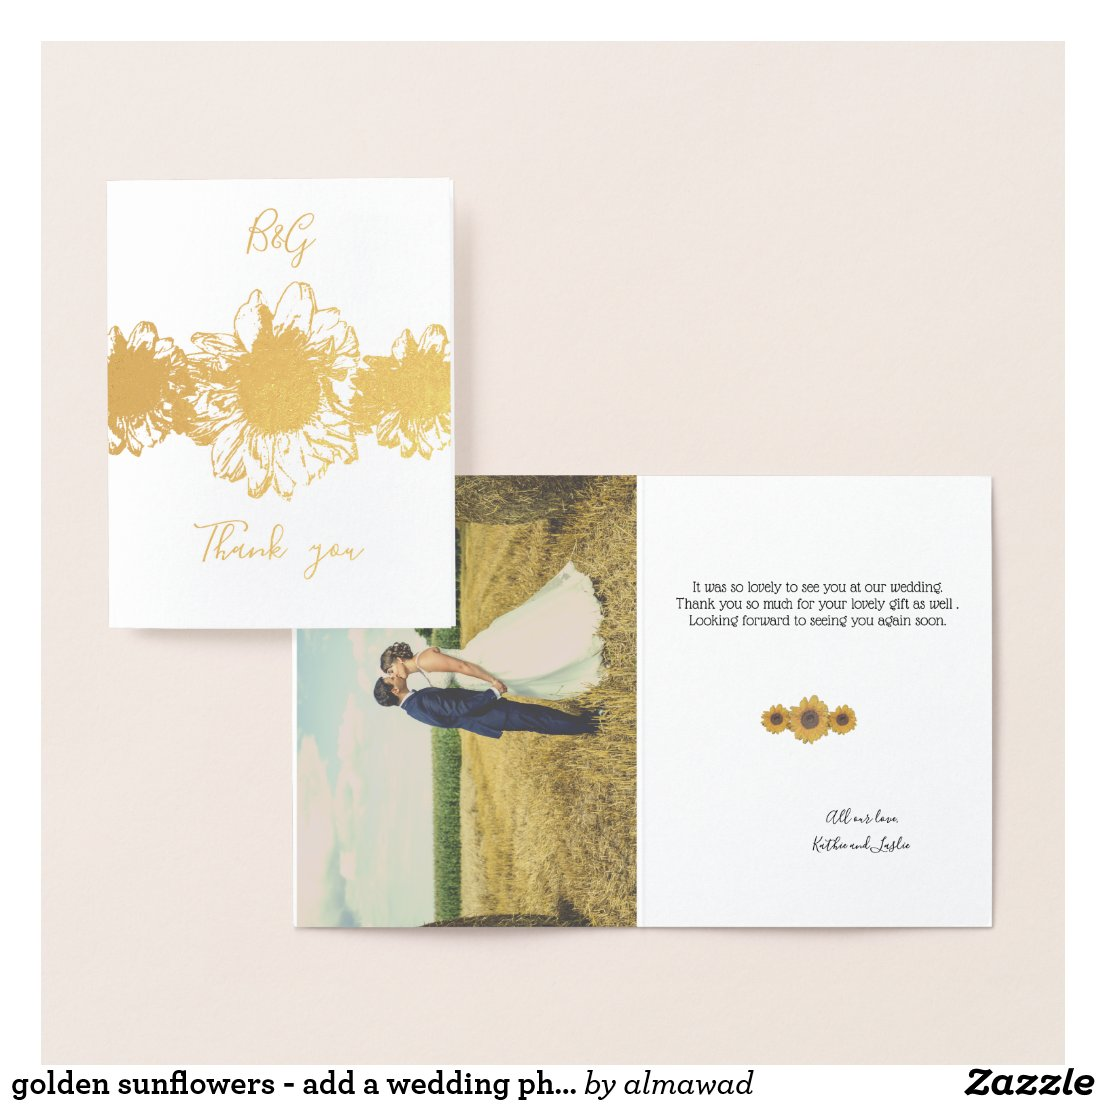 golden sunflowers - add a wedding photo foil card